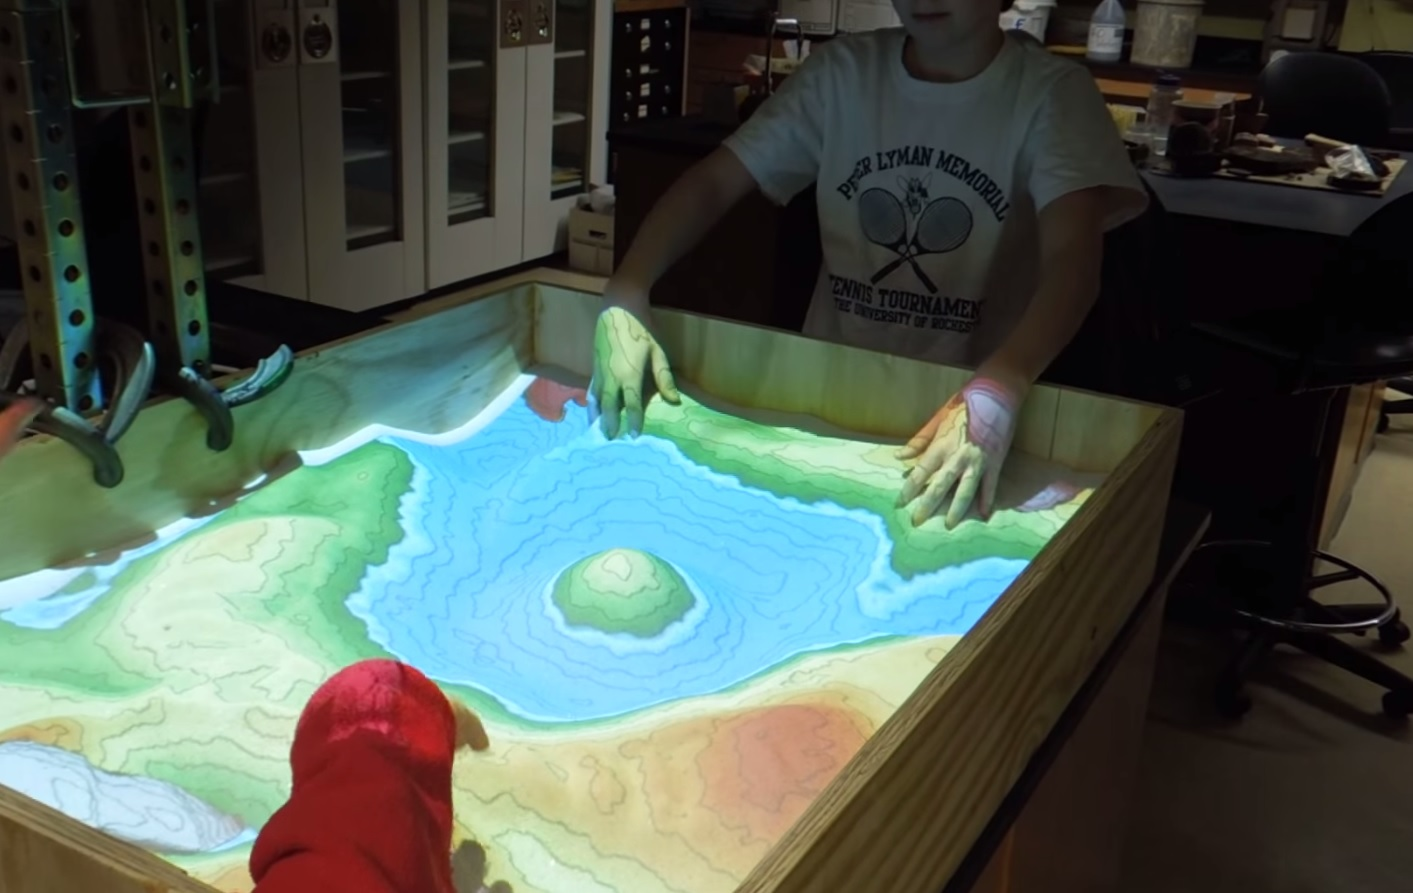 Topographic Map Video Video: Make Your Own